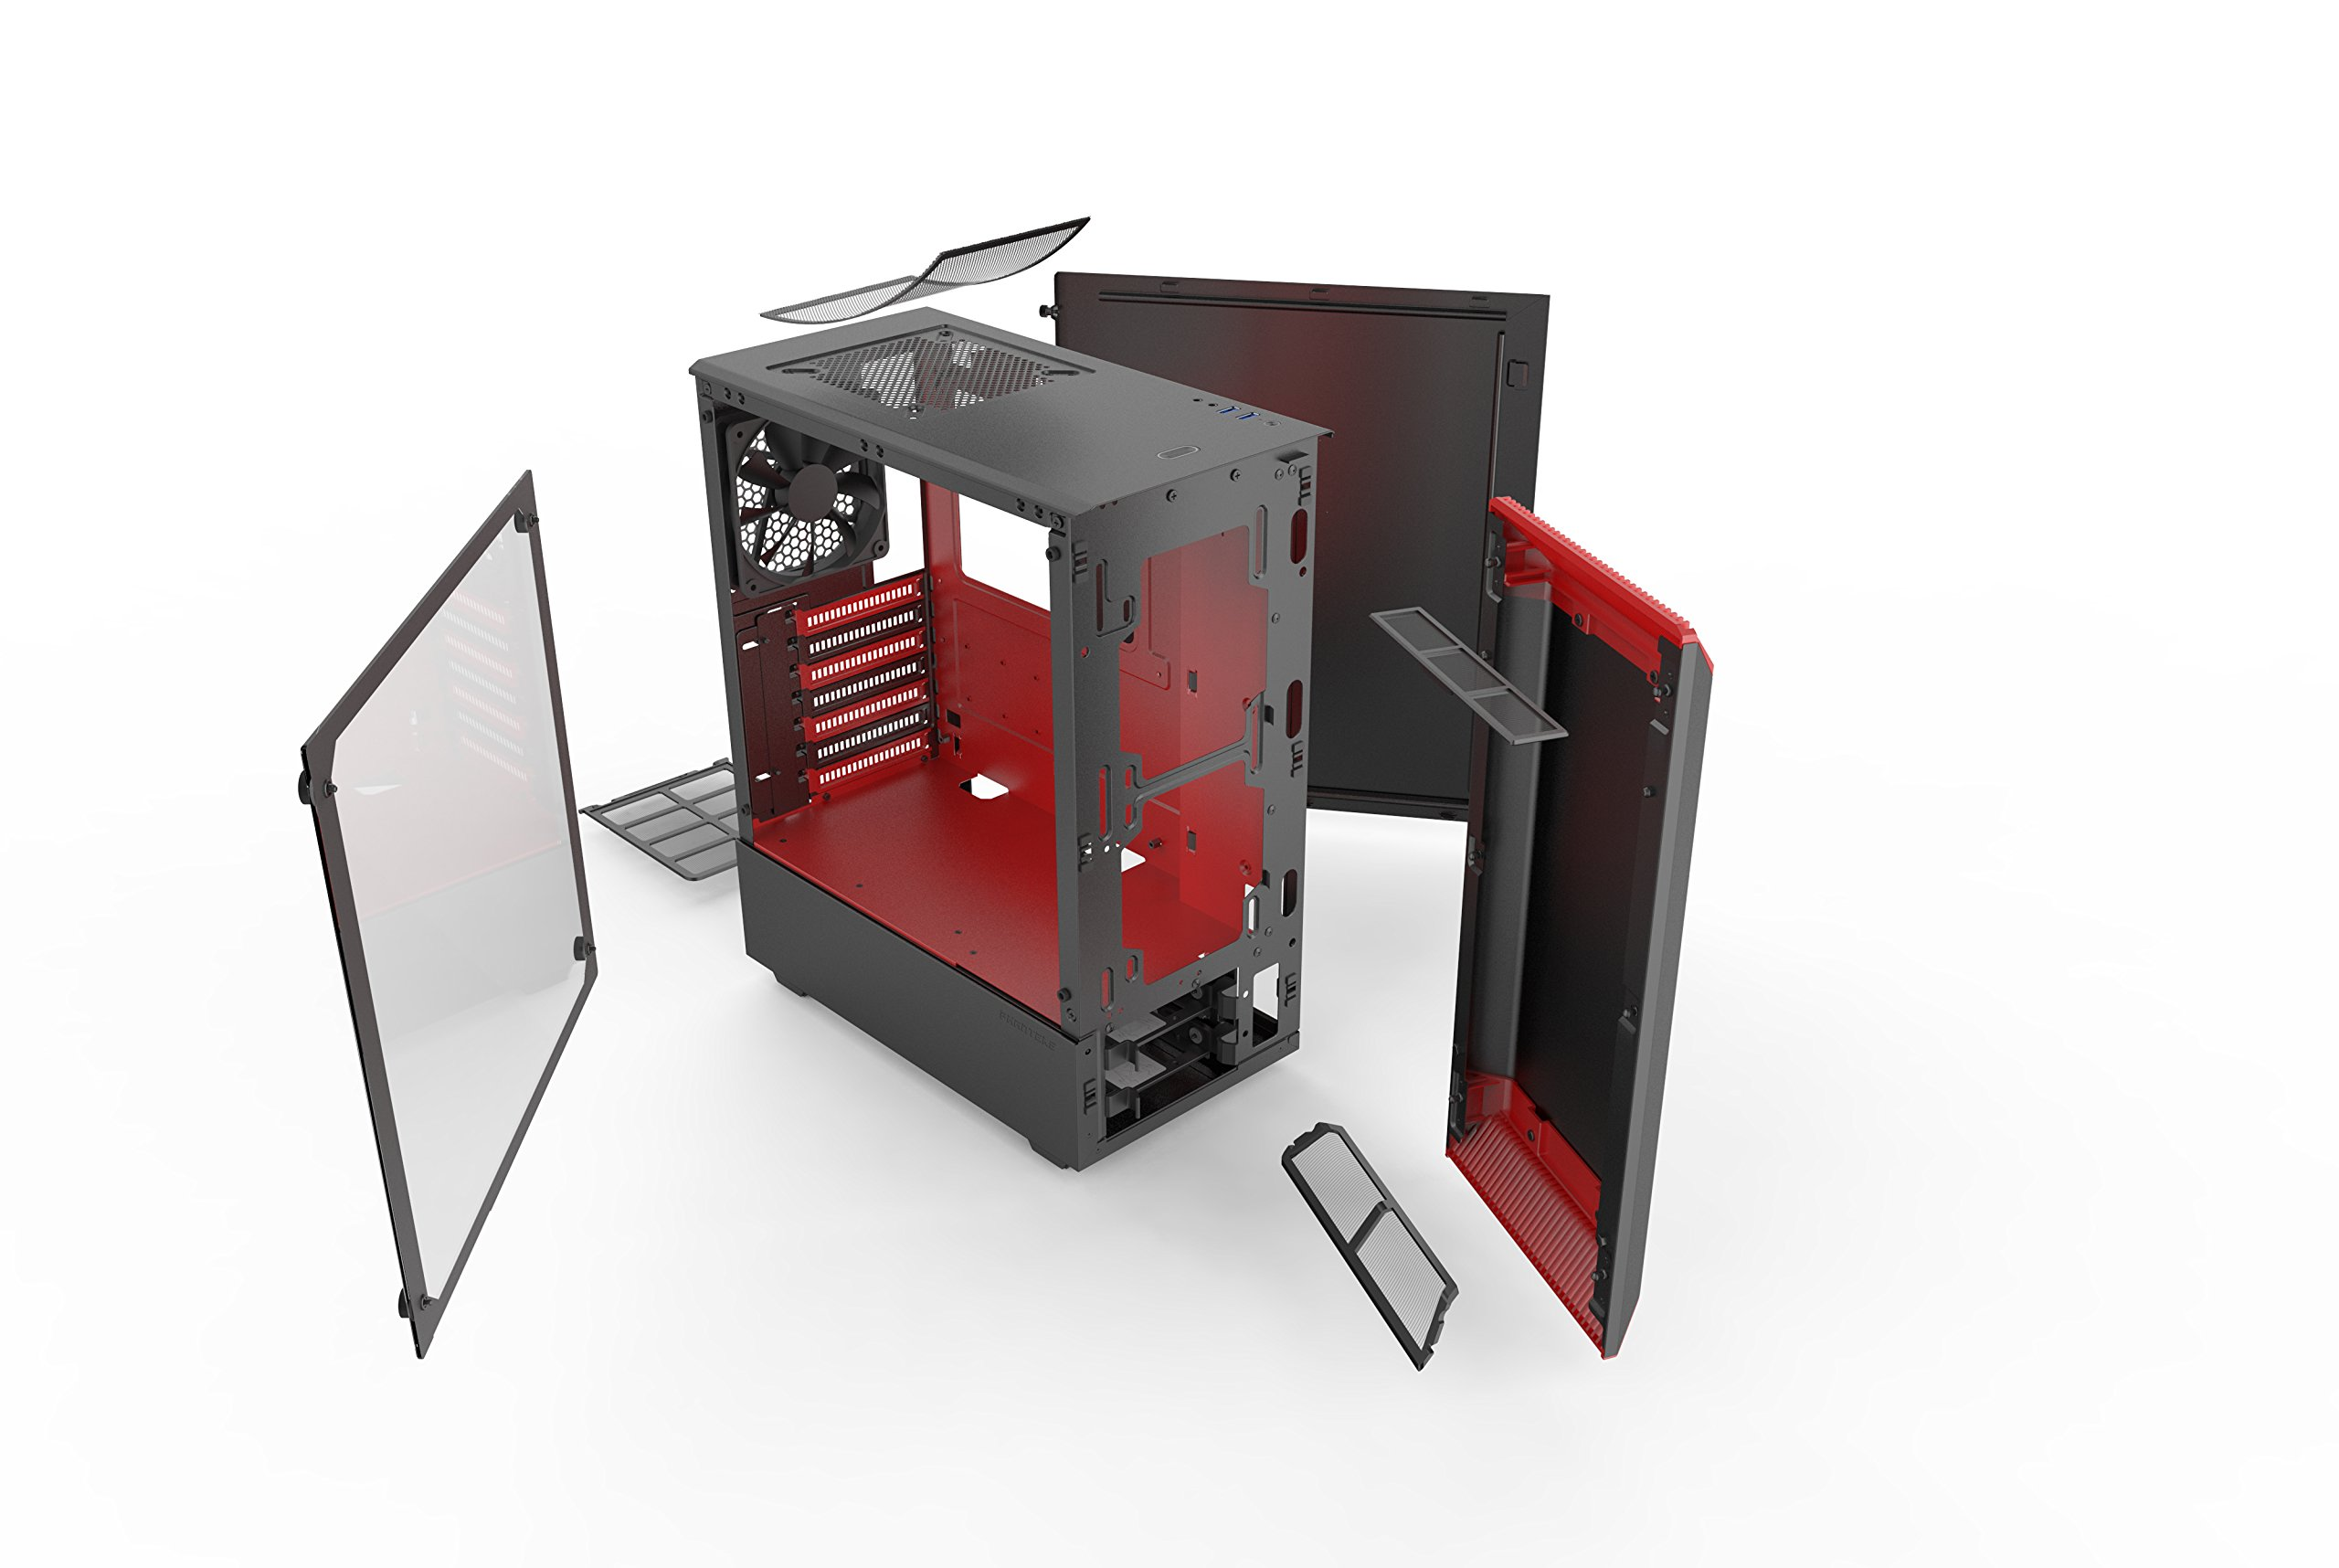 Phanteks PH-EC300PTG_BR Eclipse P300 Tempered Glass Steel ATX Mid Tower Case Black/Red by Phanteks (Image #12)